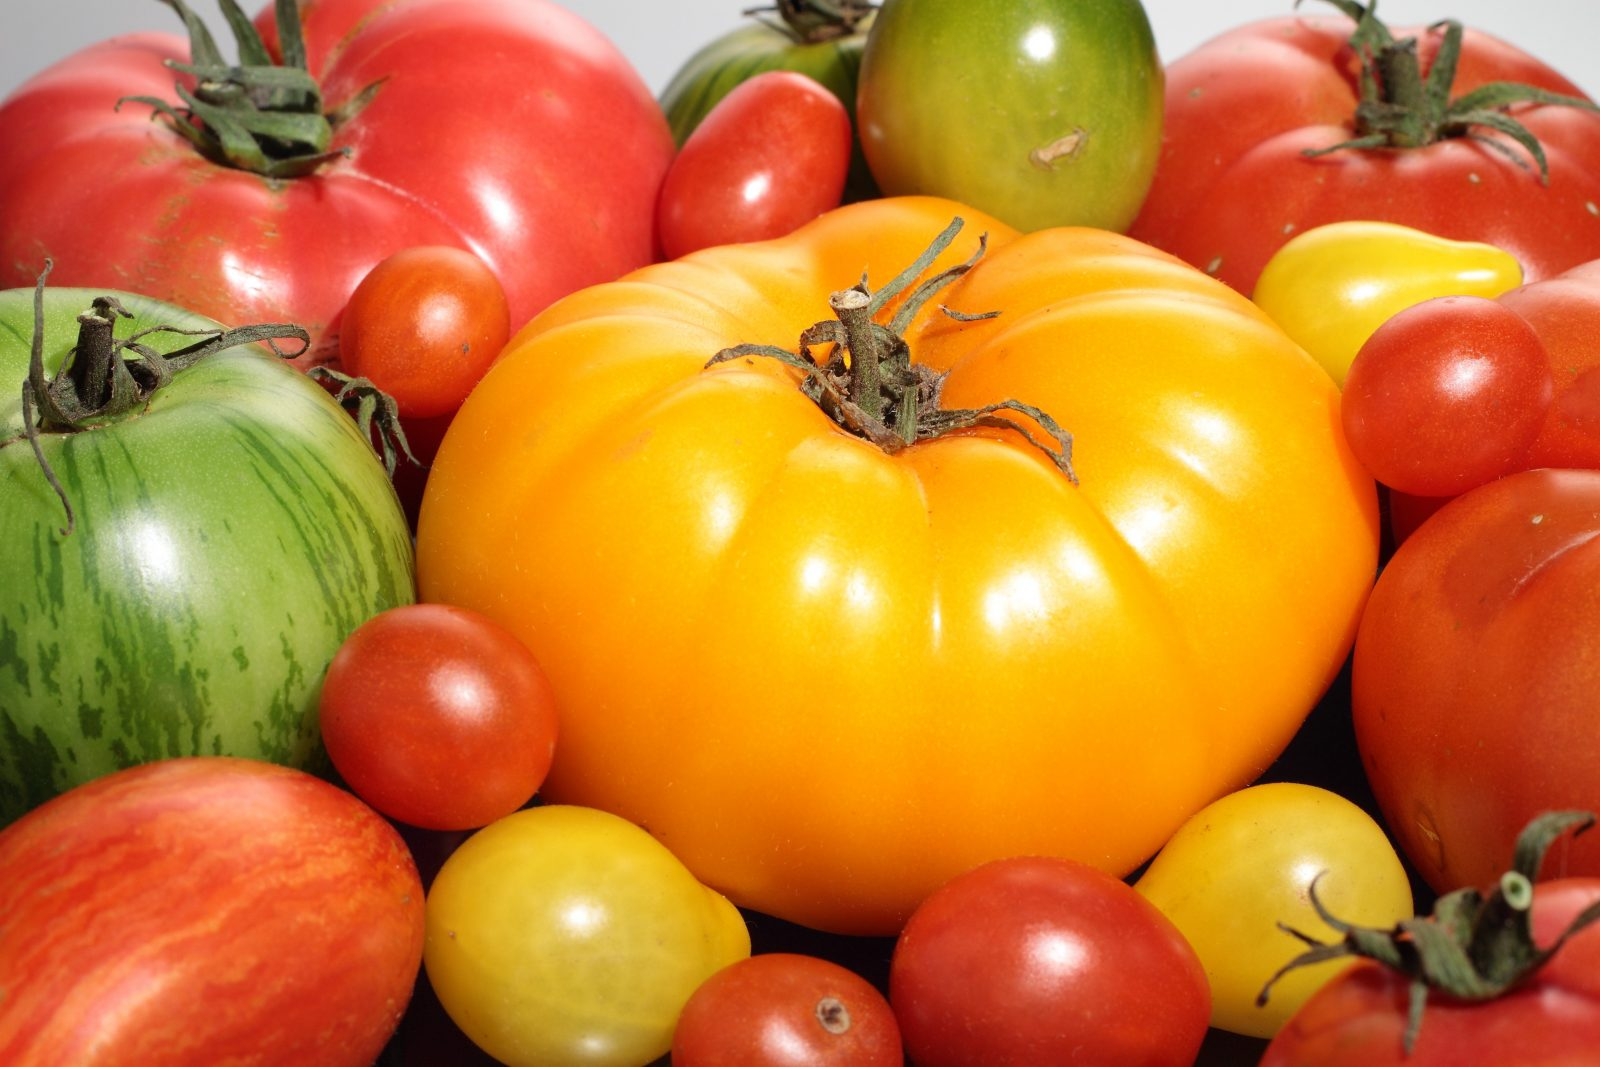 Tomatoes - pick your own